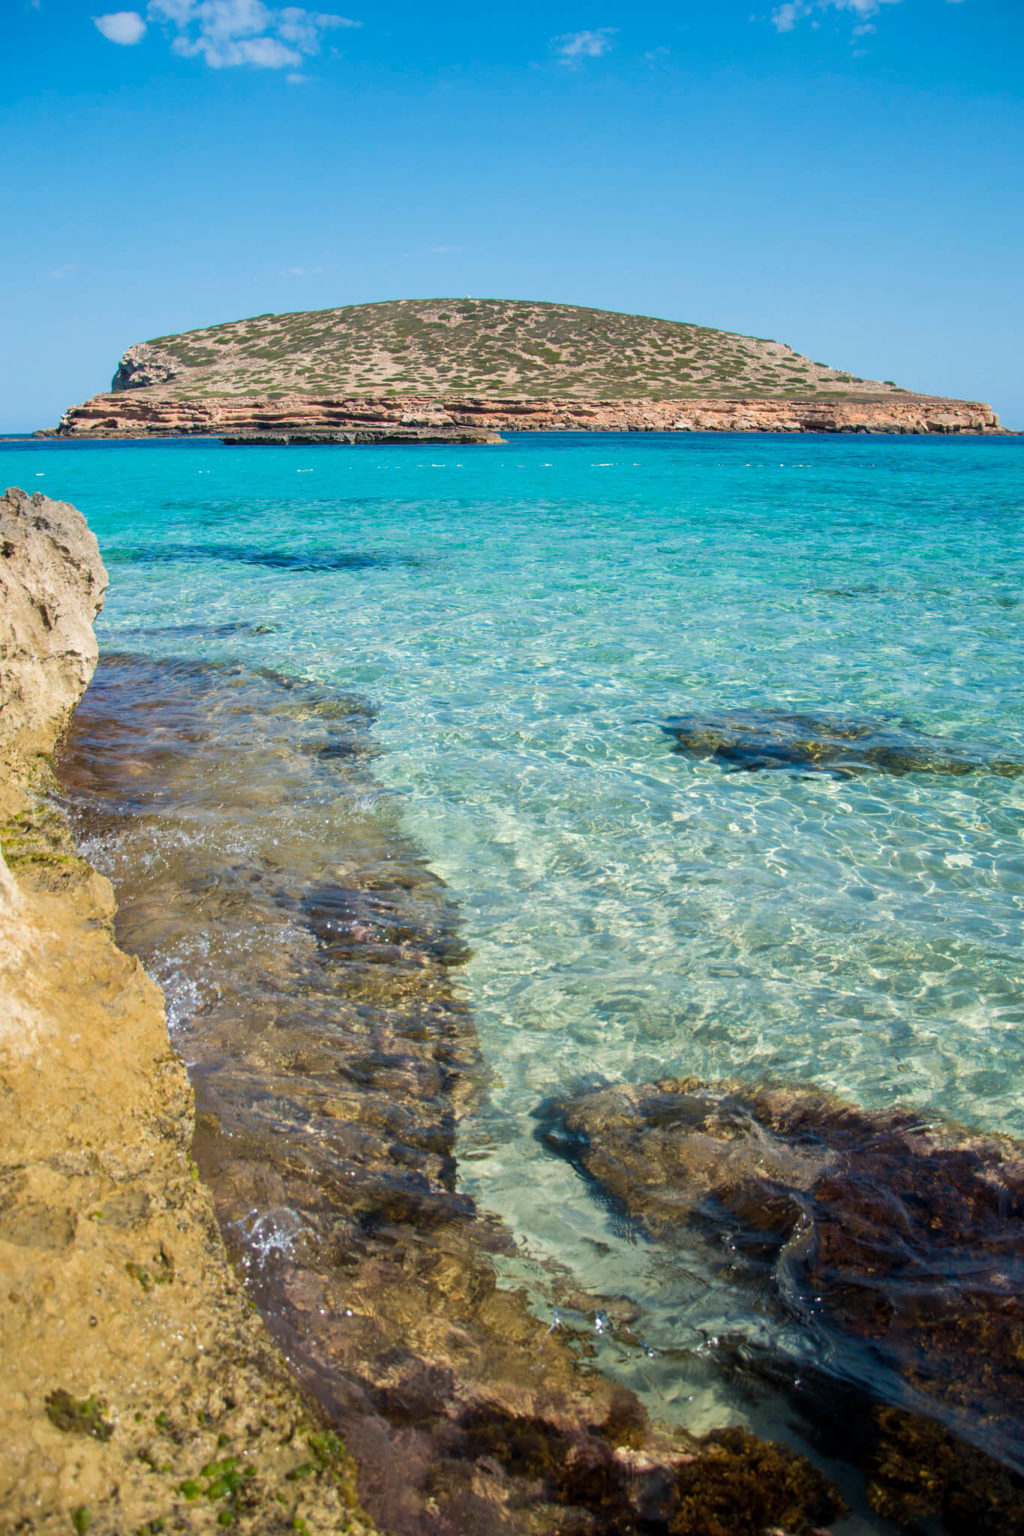 https://www.white-ibiza.com/wp-content/uploads/2020/03/ibiza-guide-areas-south-west-2020-10-1024x1536.jpg